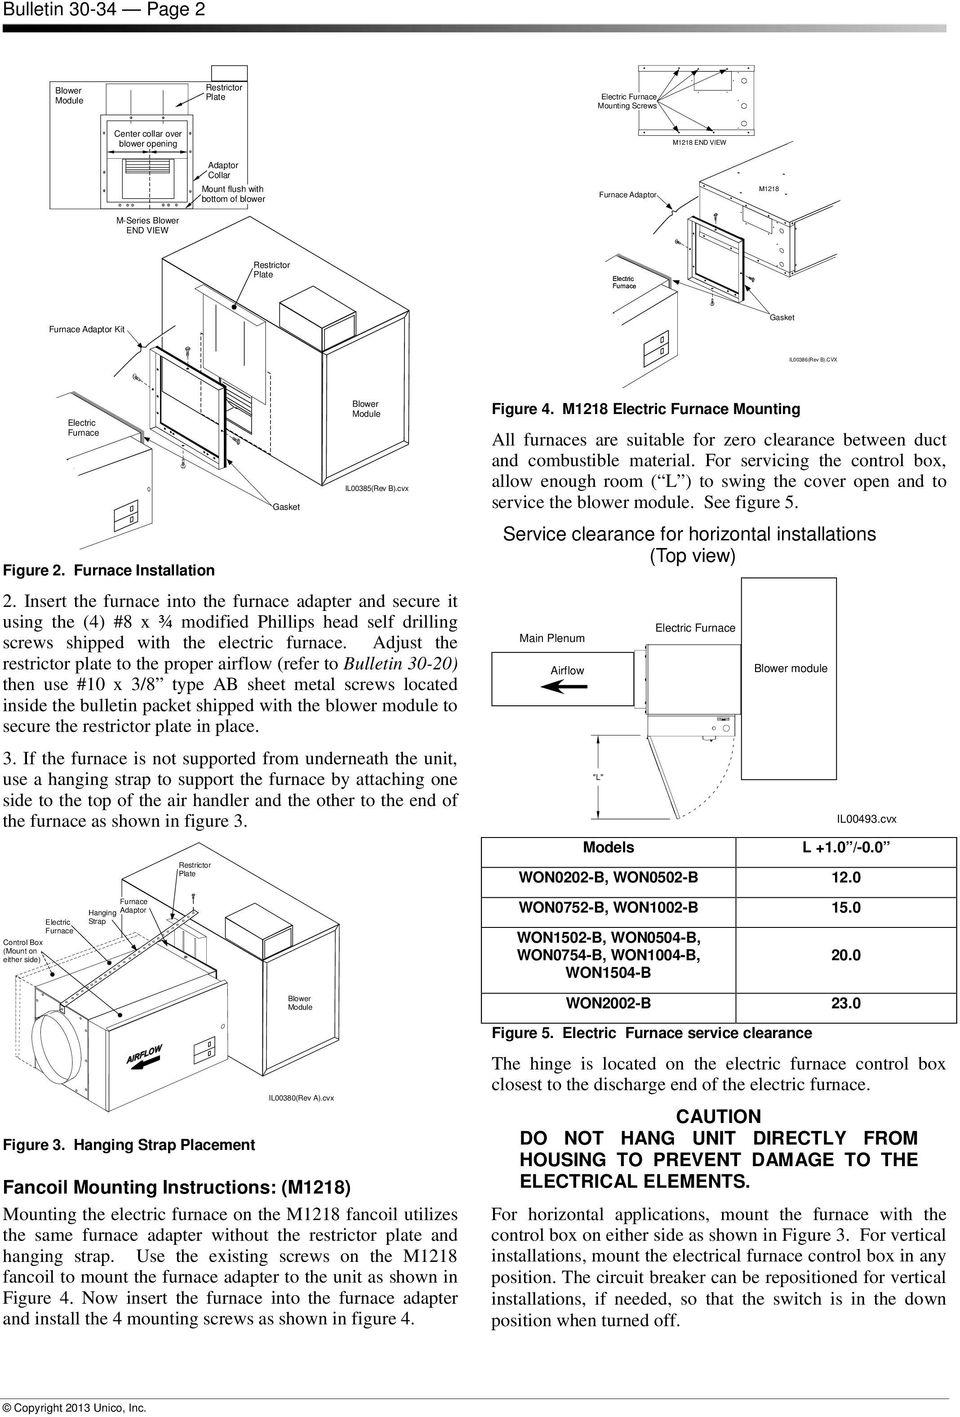 WON0502-B INSTALLATION INSTRUCTIONS FOR ELECTRIC FURNACES. Bulletin on